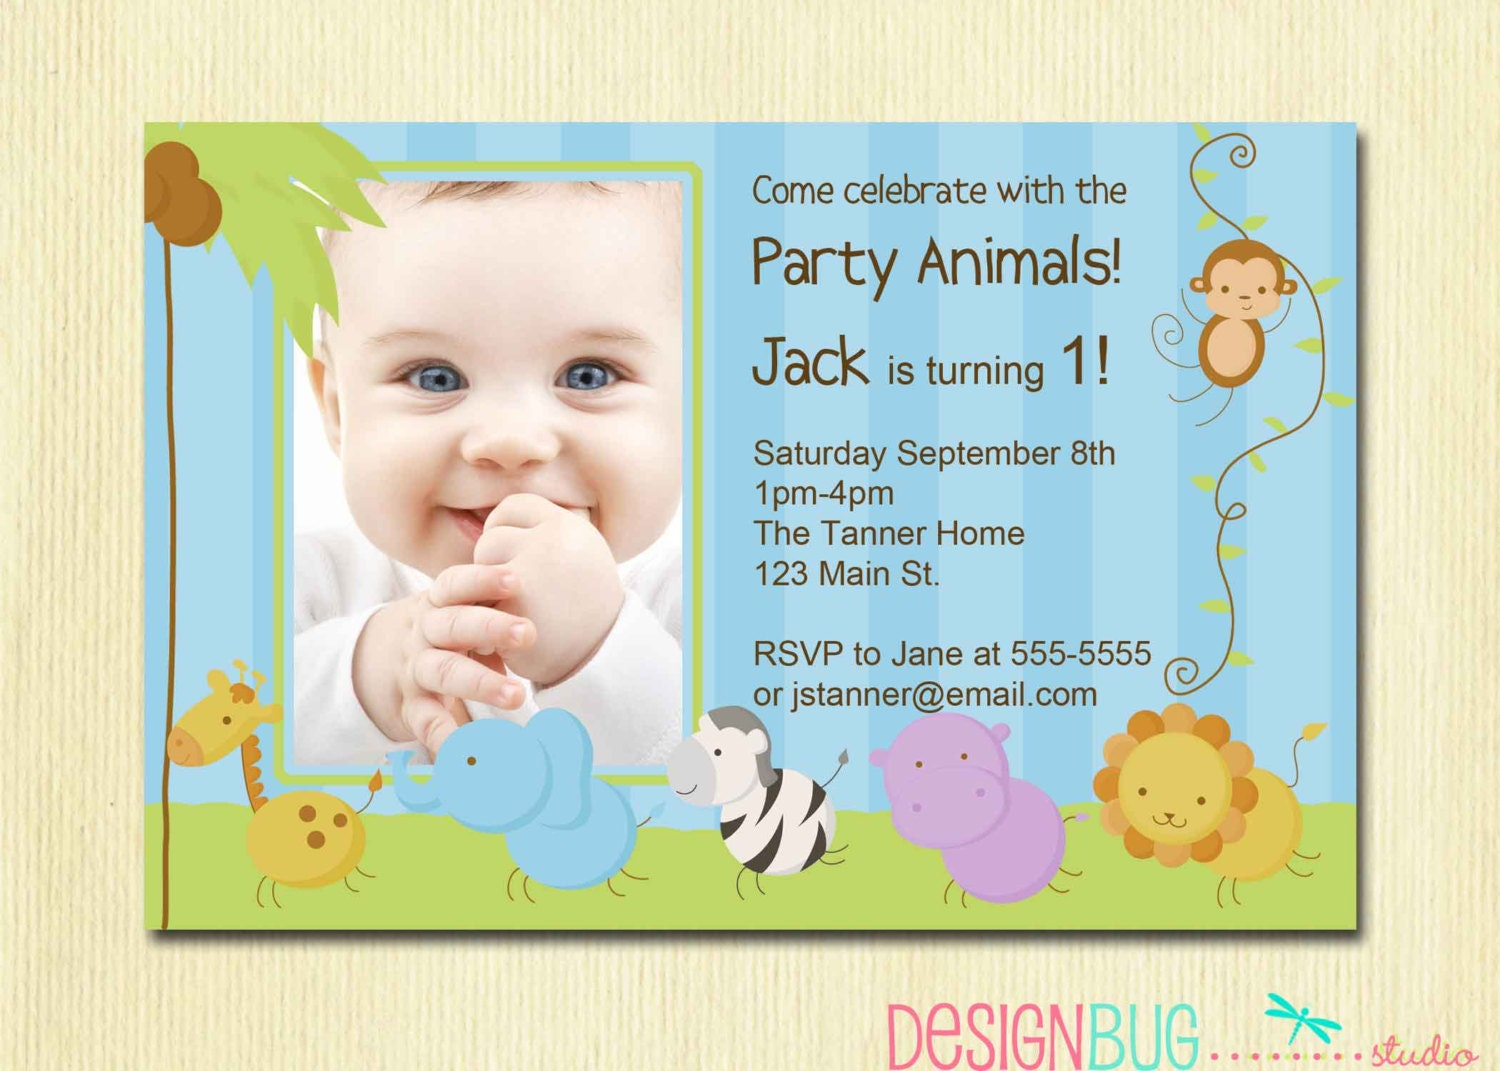 Fantastic 1 Year Experience Resume In Java J2ee Huge 10 Minute Resume Builder Solid 15 Year Old Resume Example 1920s Newspaper Template Youthful 2 Page Resume Too Long Green2014 June Calendar Template First Birthday Boy Invitation Baby Jungle Safari Party